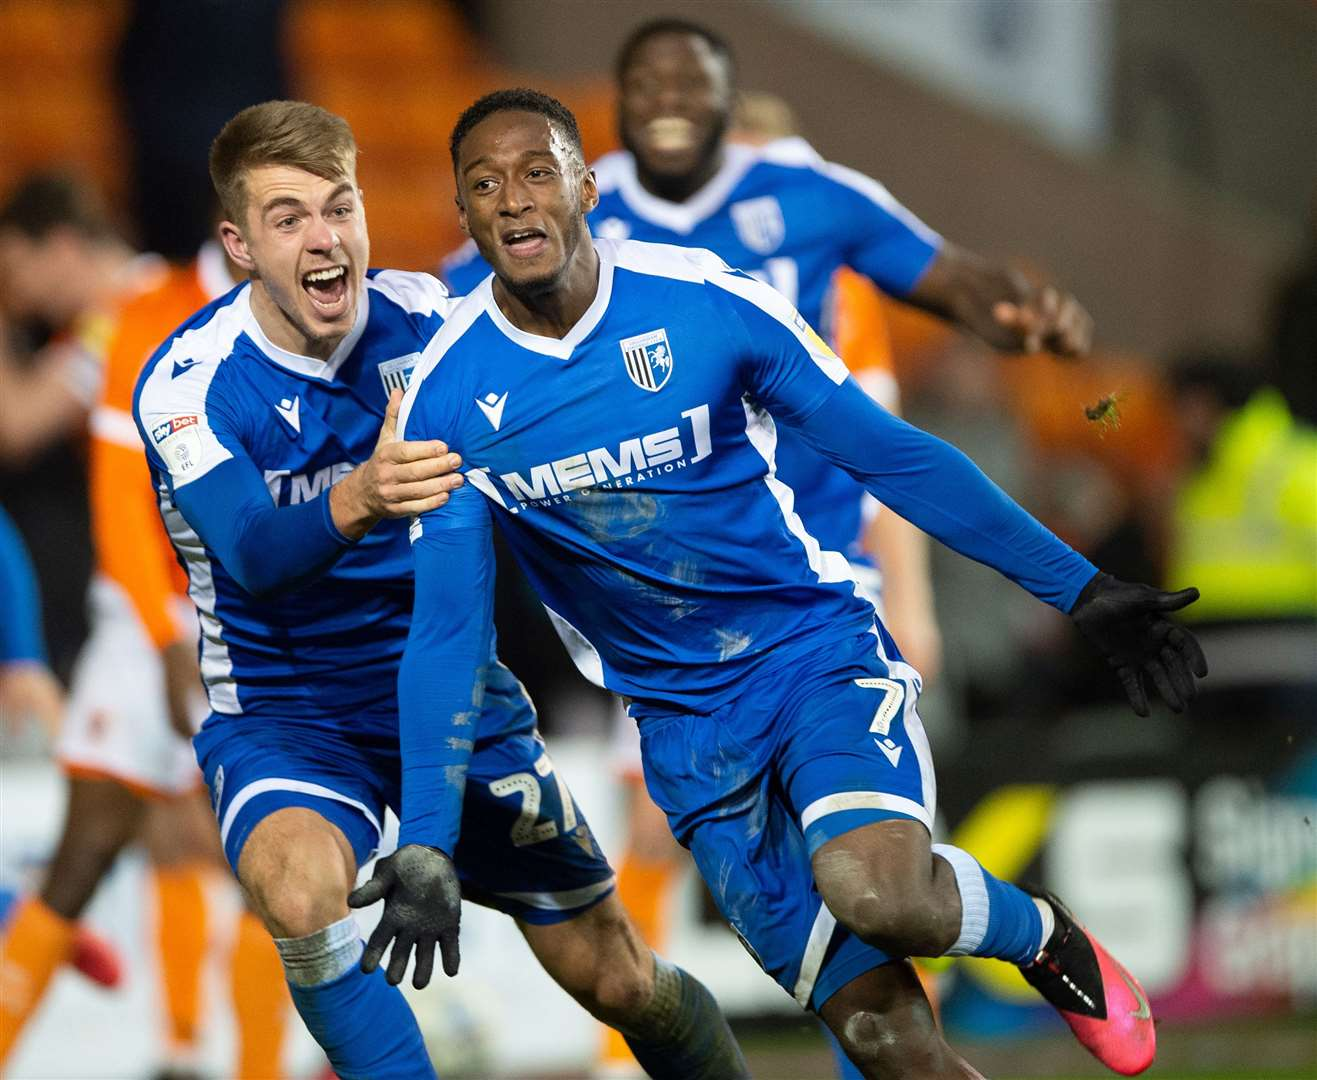 Gillingham striker Brandon Hanlan celebrates scoring a midweek winner at Blackpool Picture: Ady Kerry